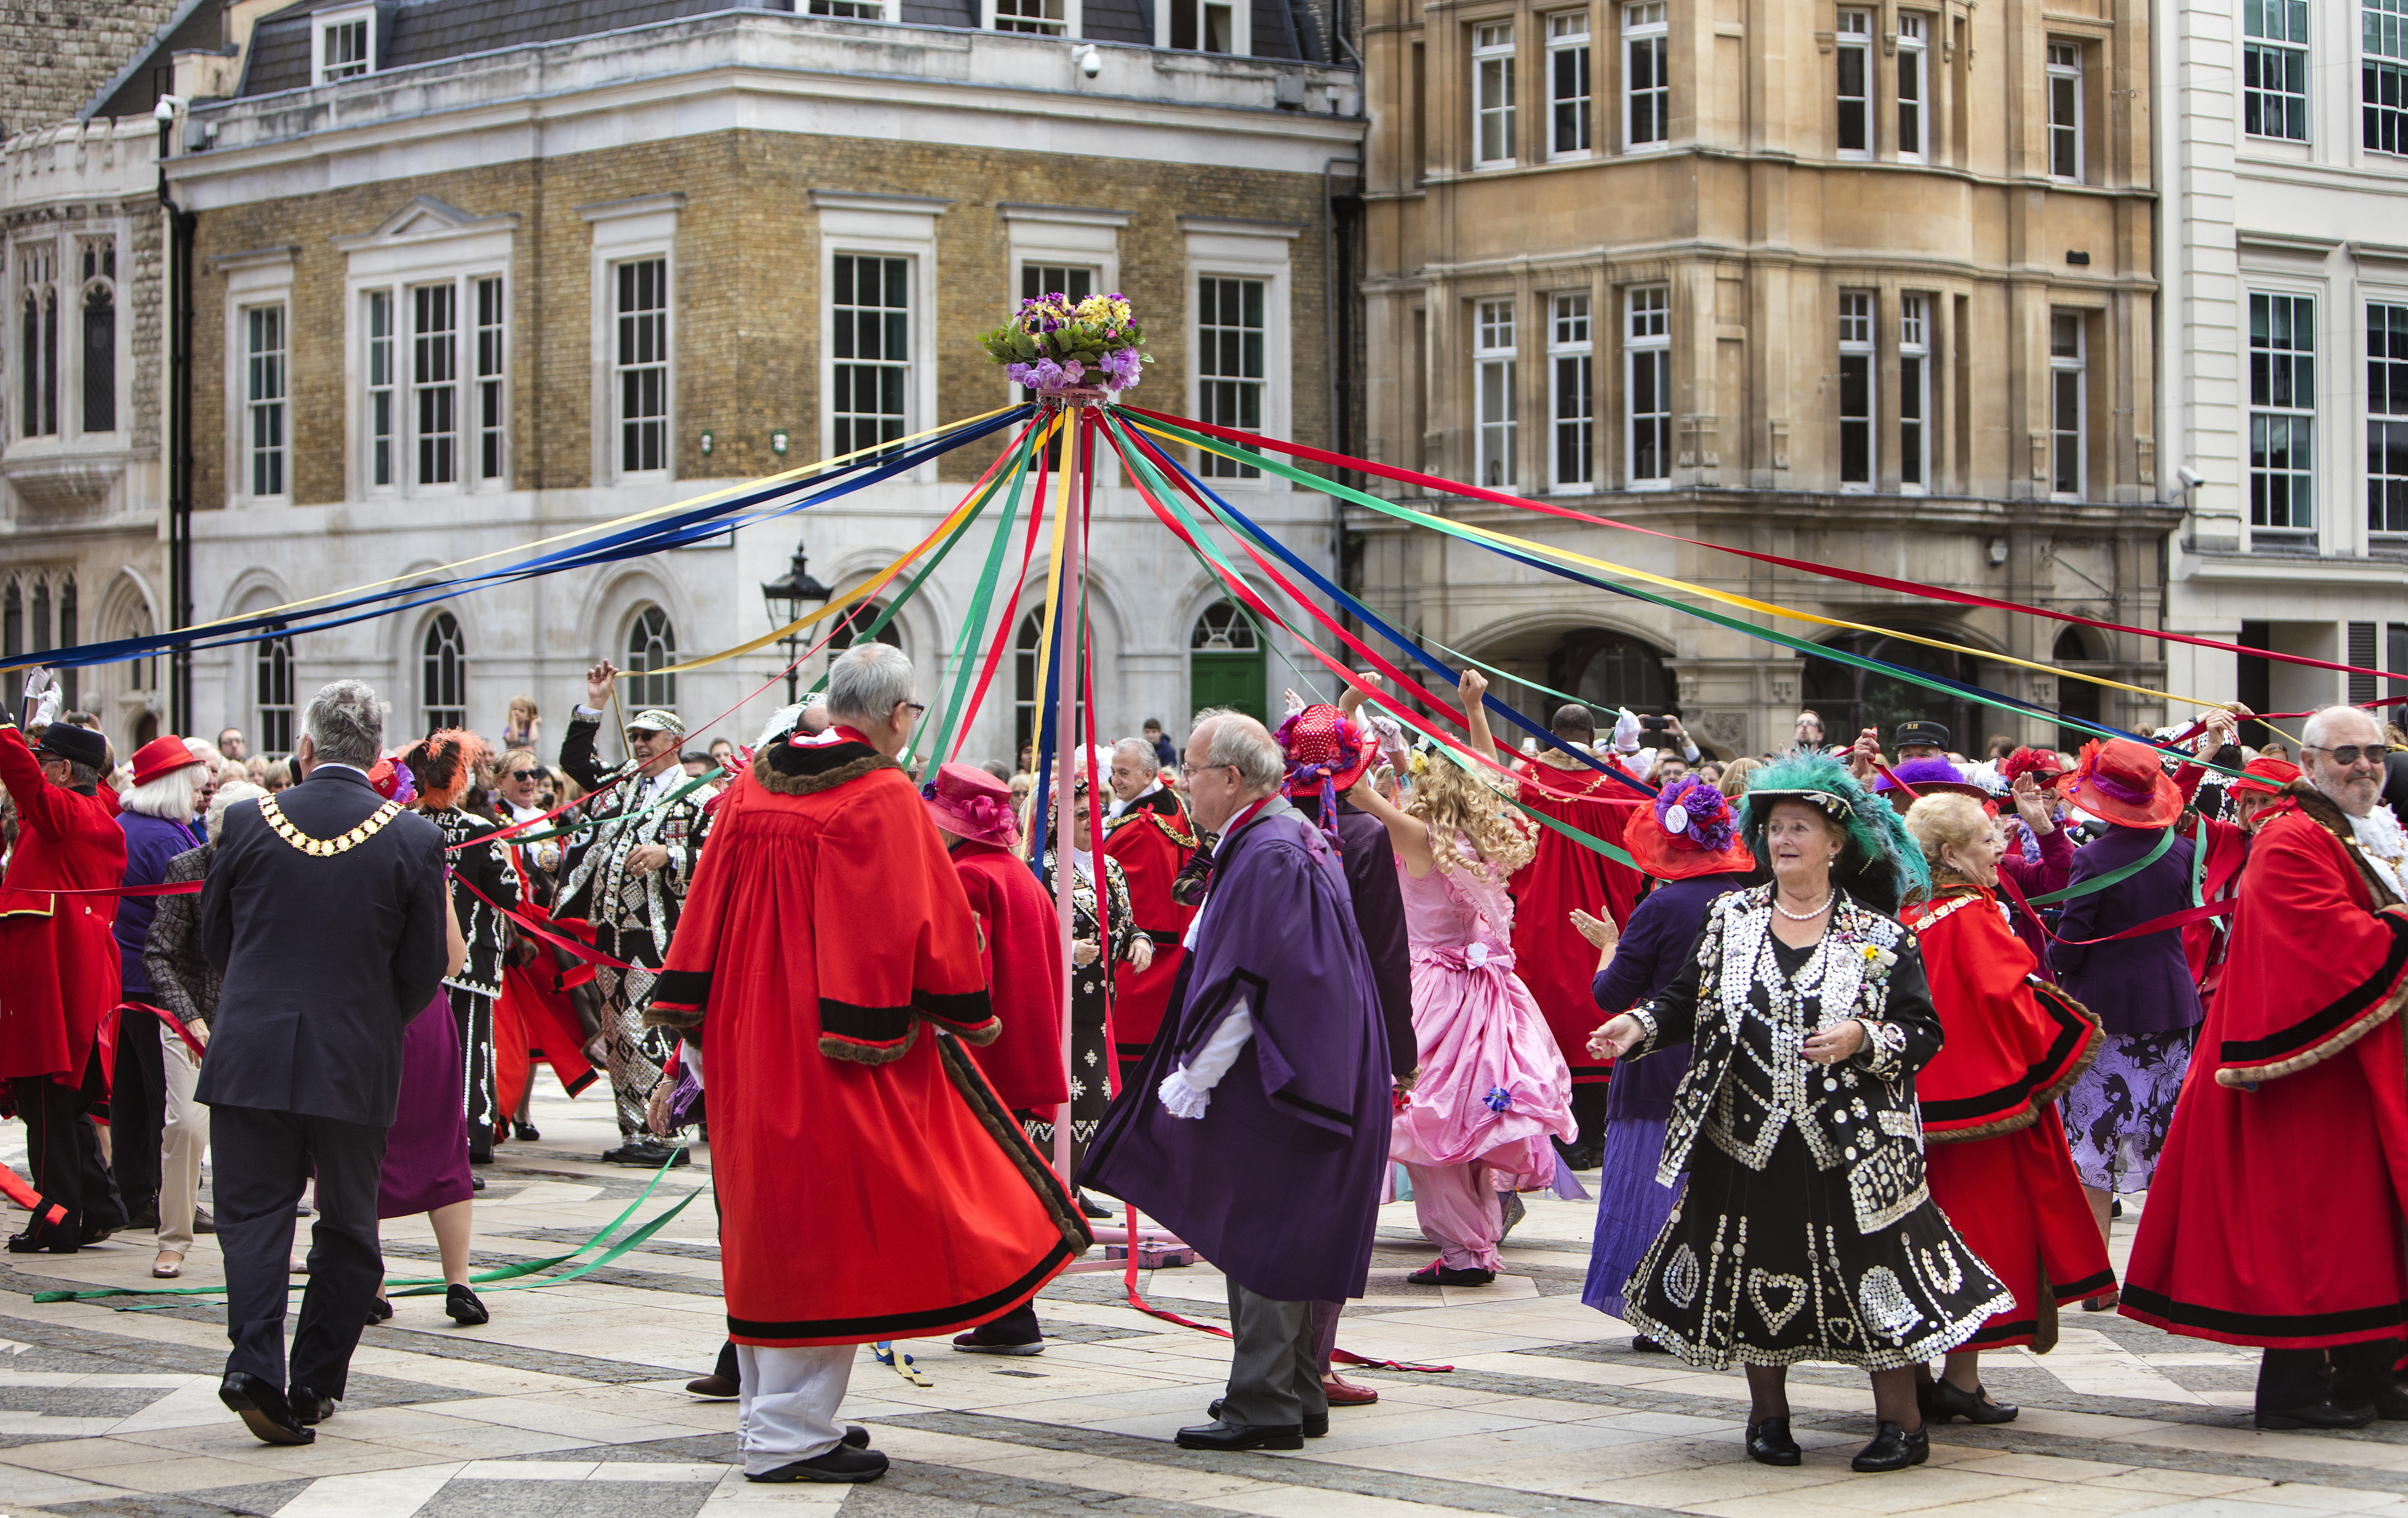 People celebrating May Day dance round a maypole